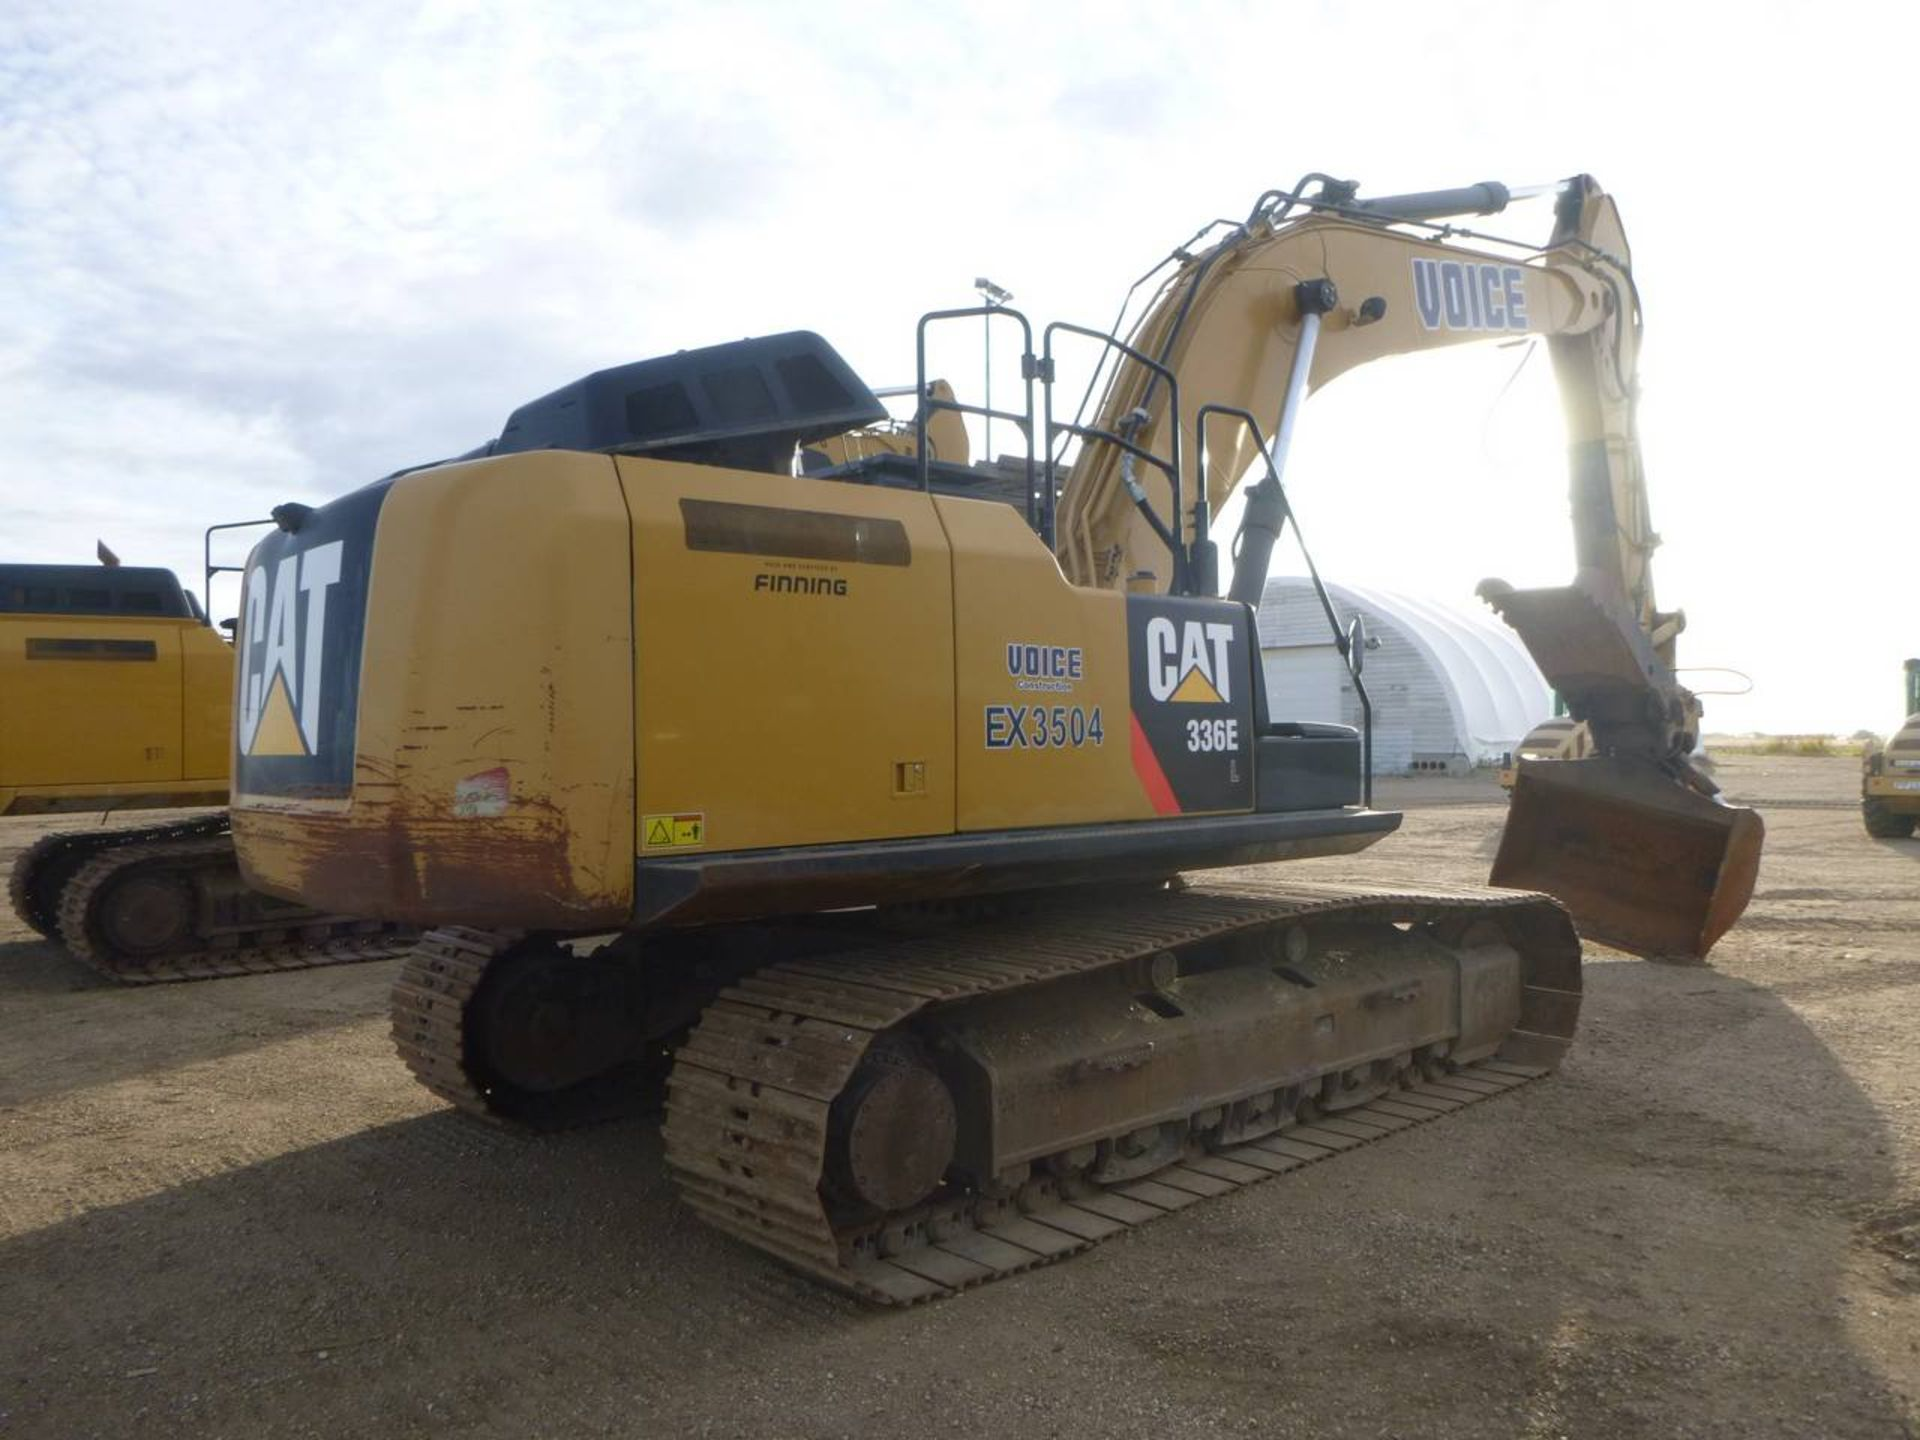 2012 Caterpillar 336E L Excavator - Image 5 of 11